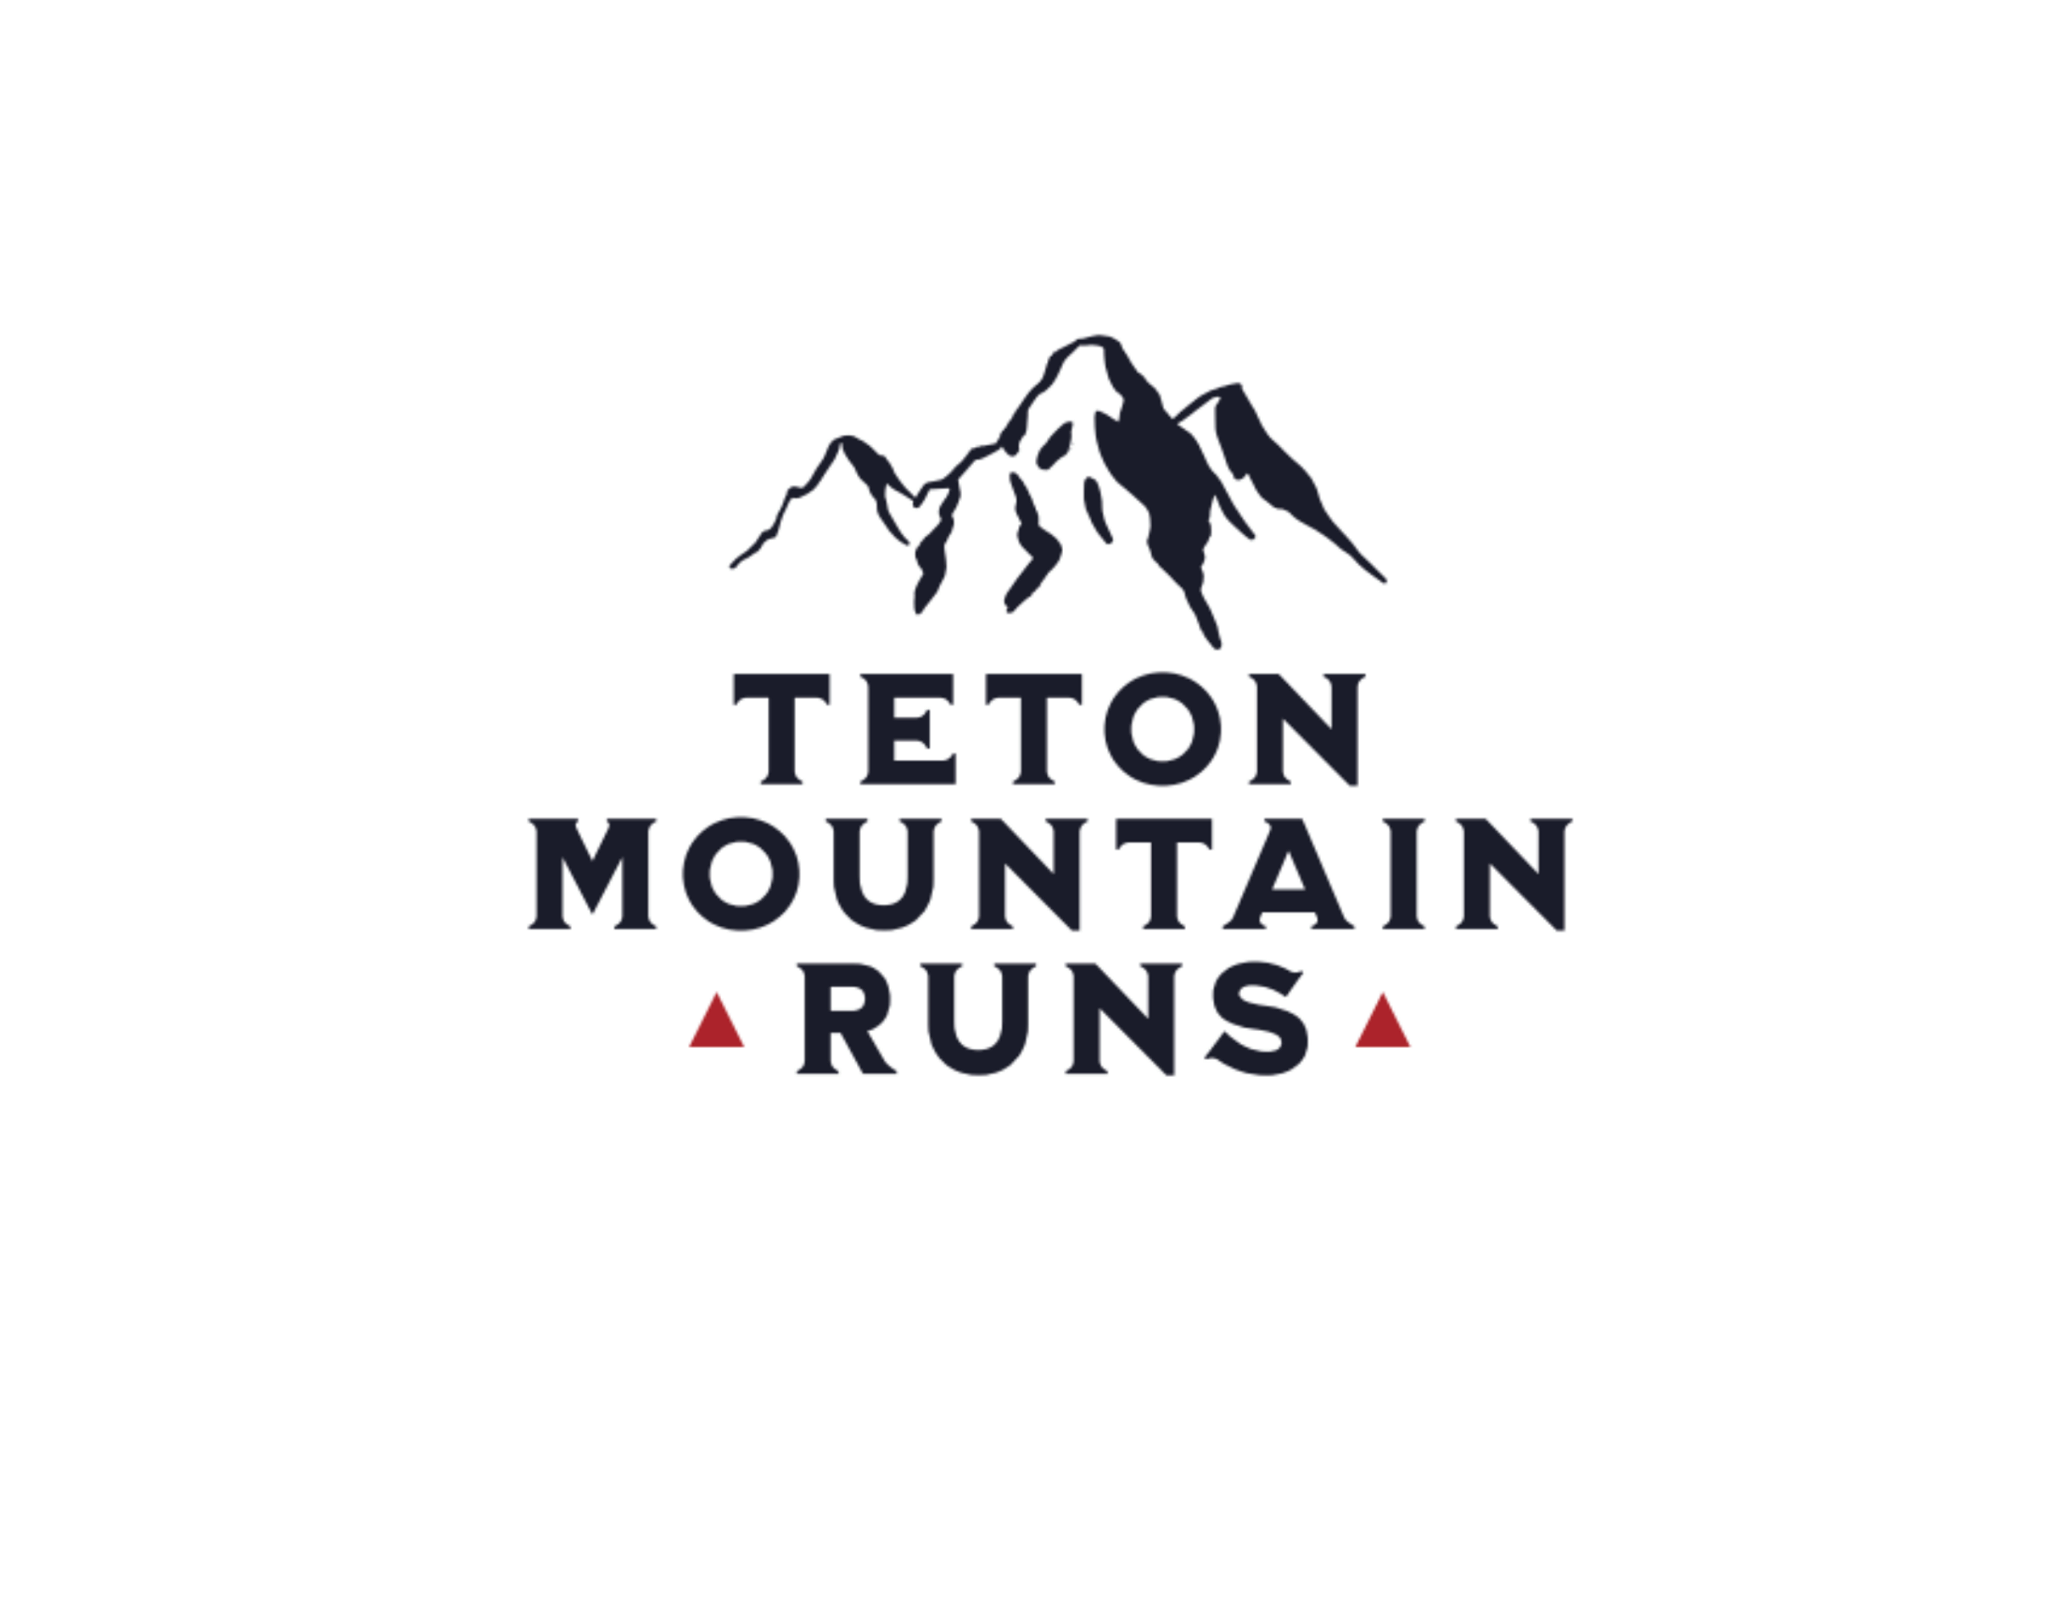 teton mountain runs